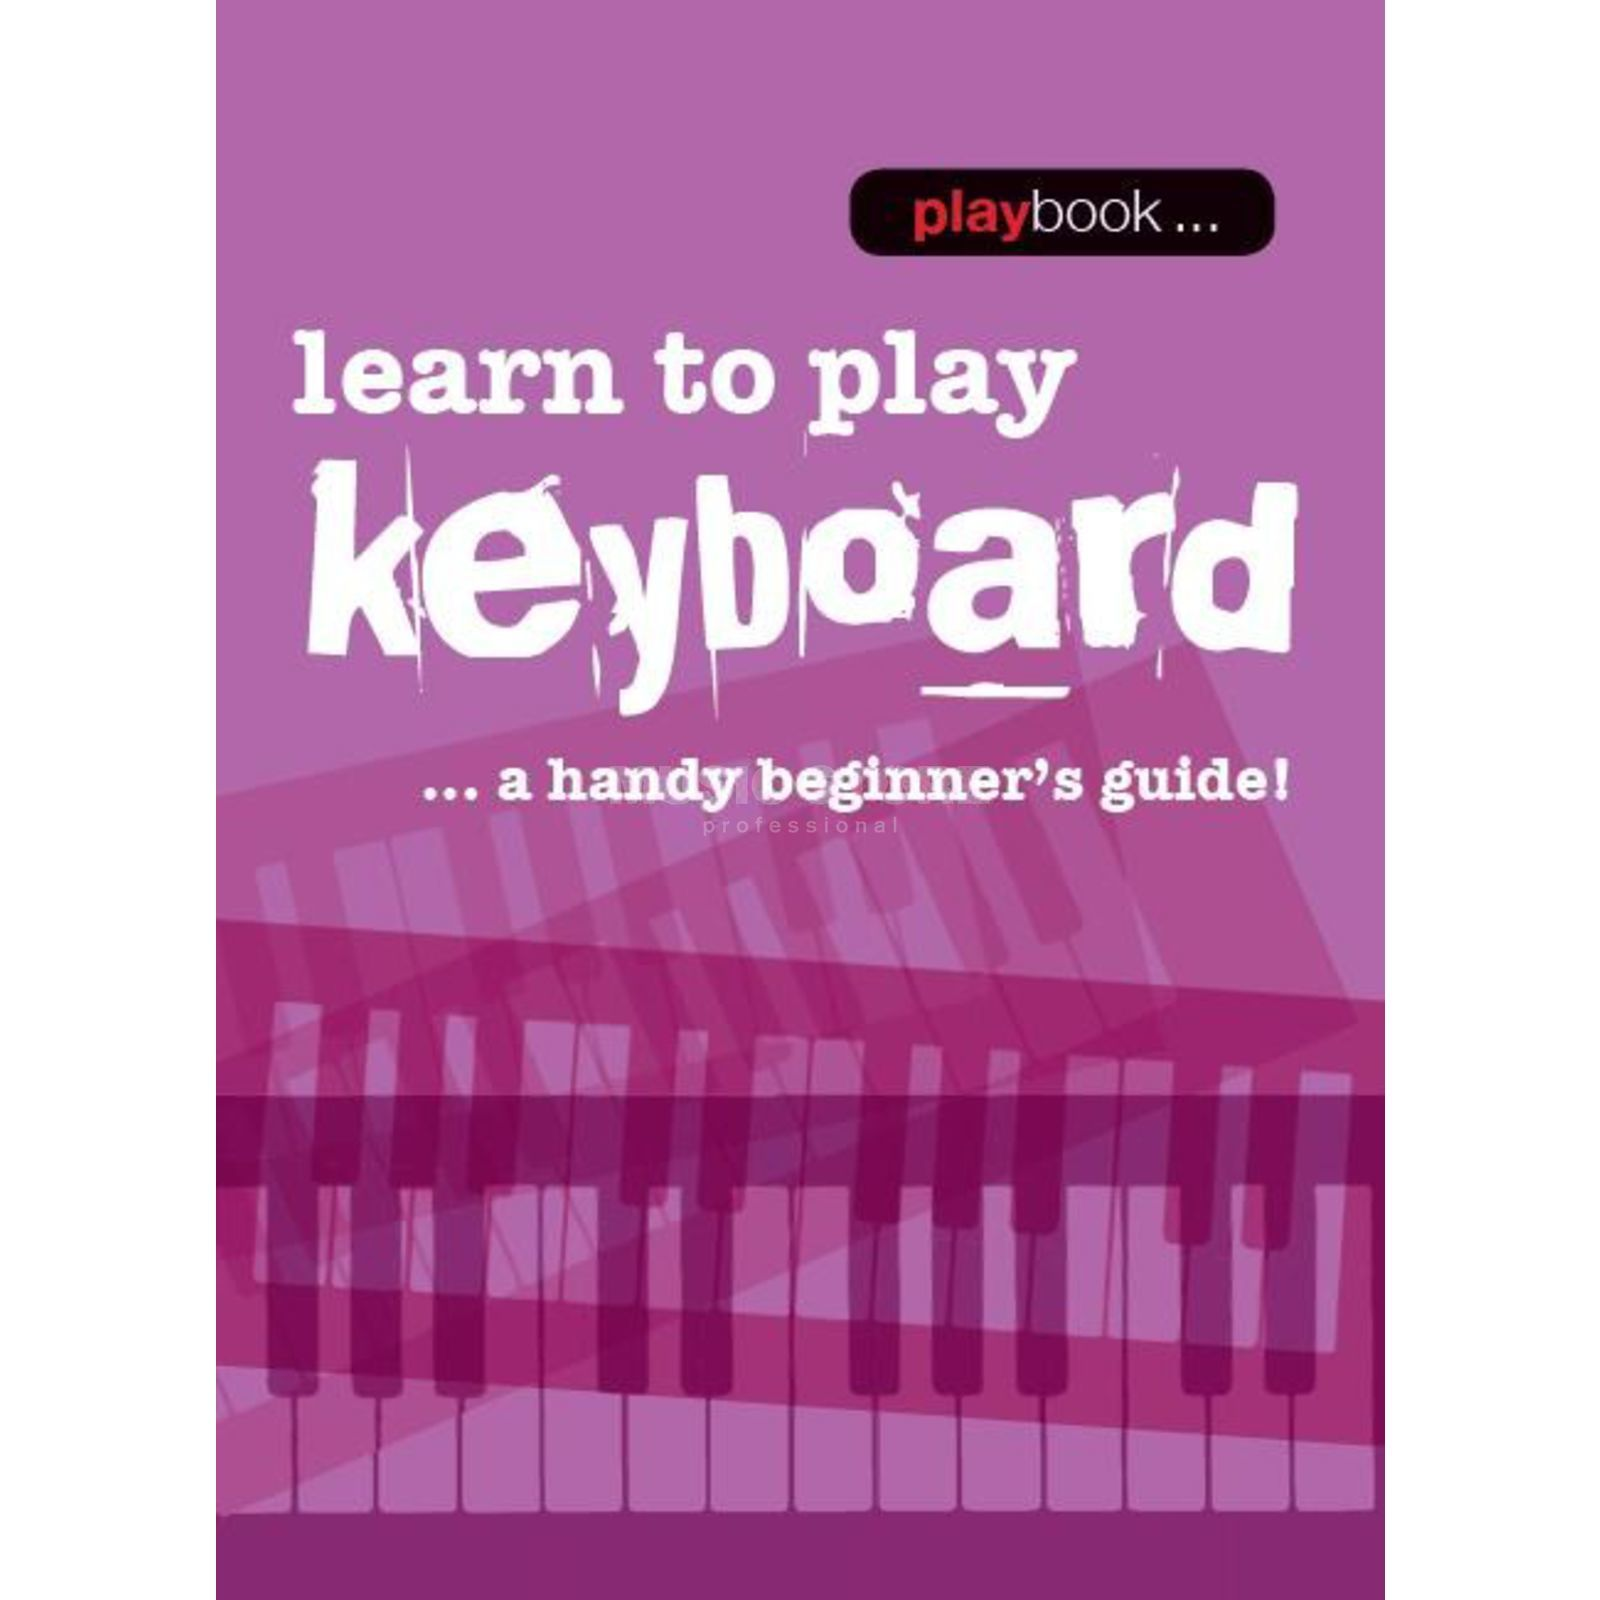 Wise Publications Playbook: Learn To Play Keyb. A Handy Beginner's Guide! Produktbillede